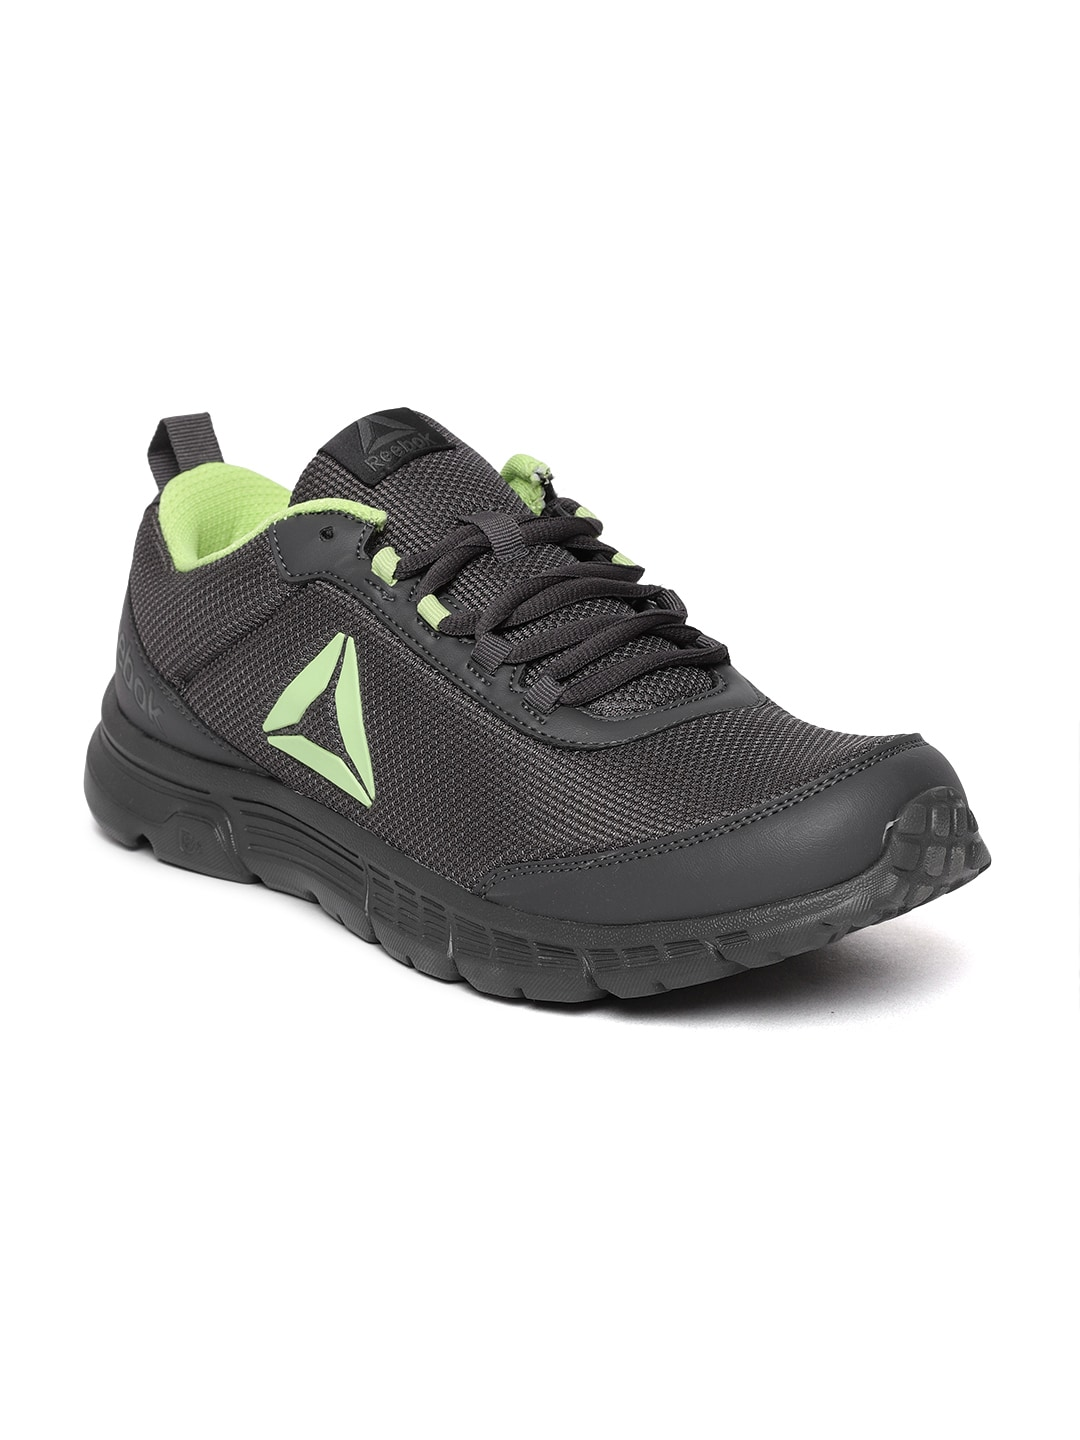 68222e908f3 Reebok Shoes - Buy Reebok Shoes For Men   Women Online